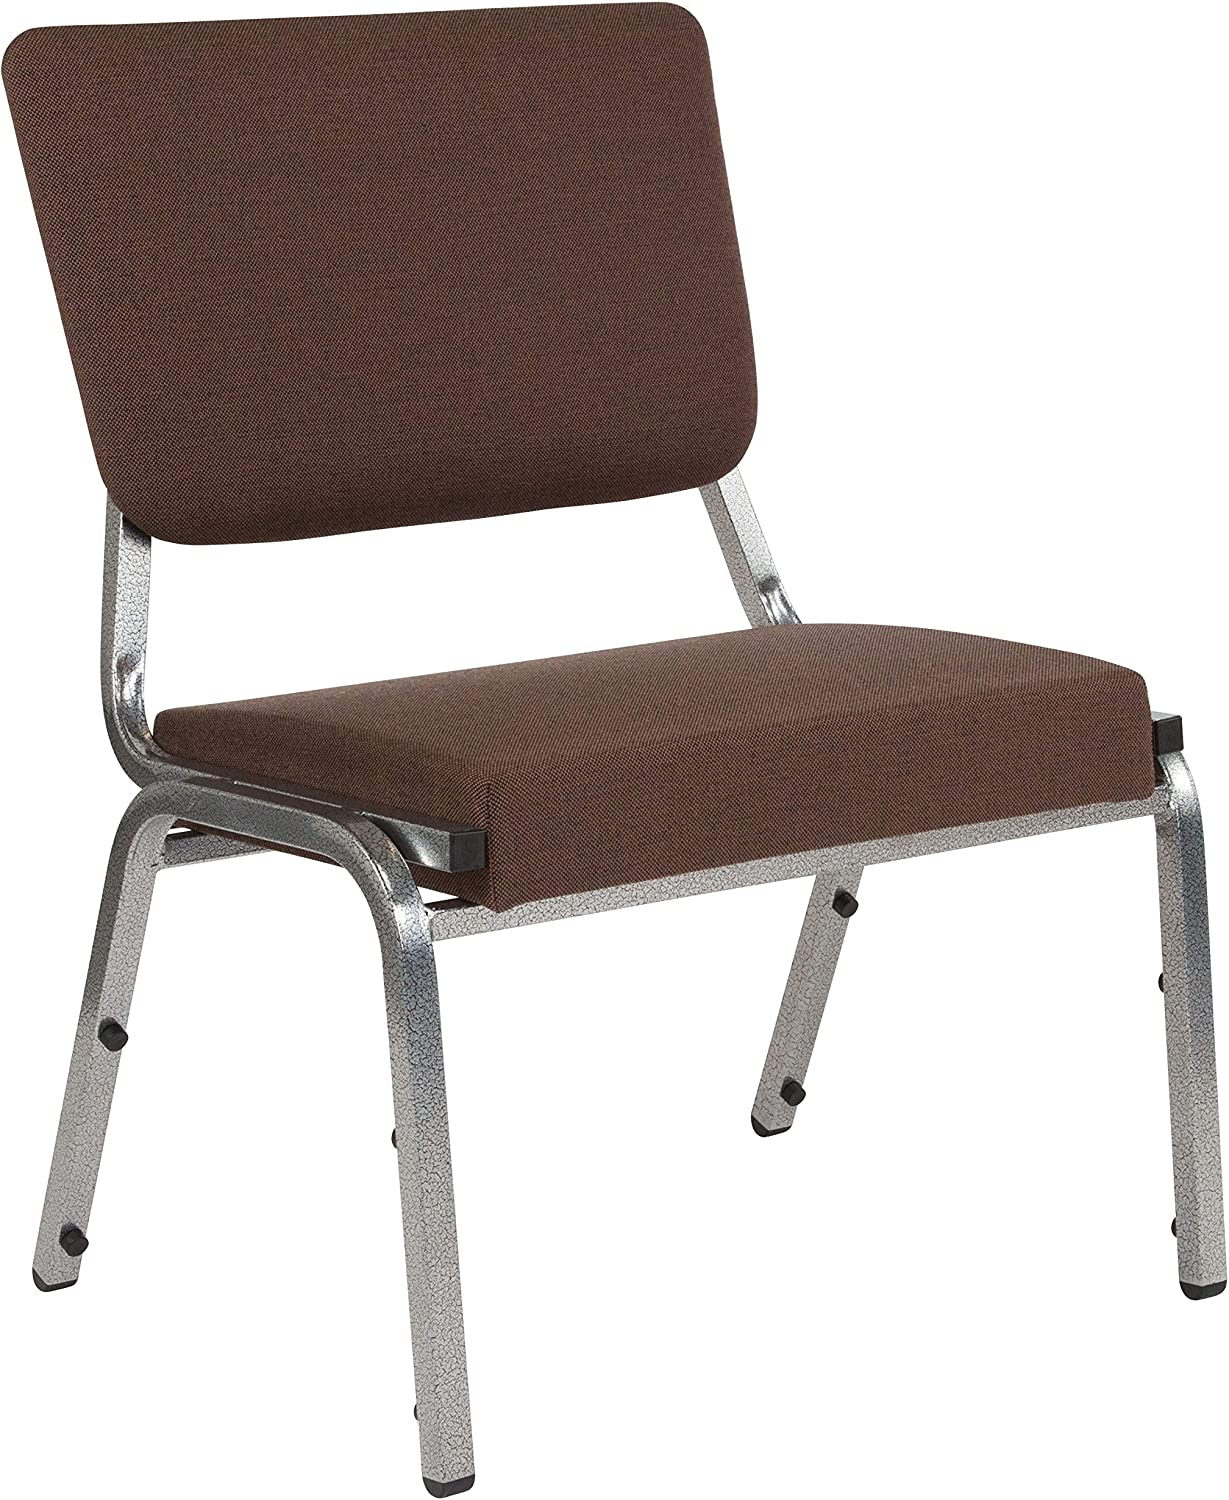 Flash Furniture HERCULES Series 1500 lb. Rated Brown Antimicrobial Fabric Bariatric Medical Reception Chair with 3/4 Panel Back